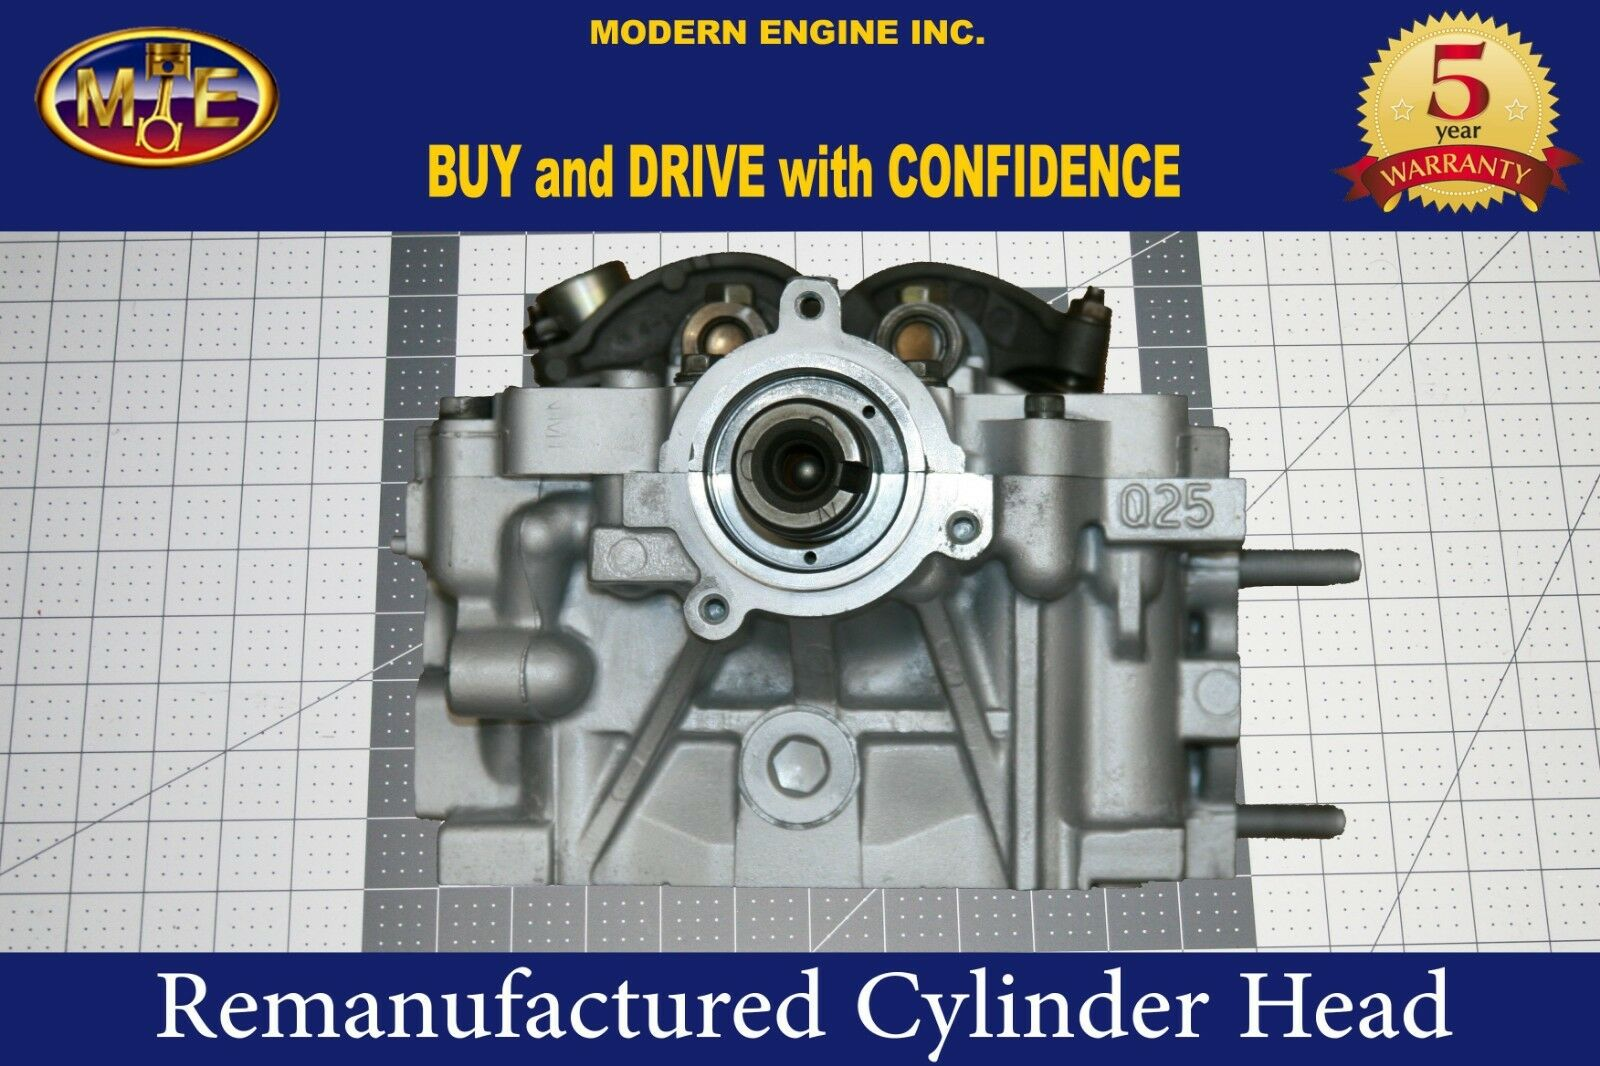 Used Subaru Cylinder Heads & Parts for Sale - Page 2